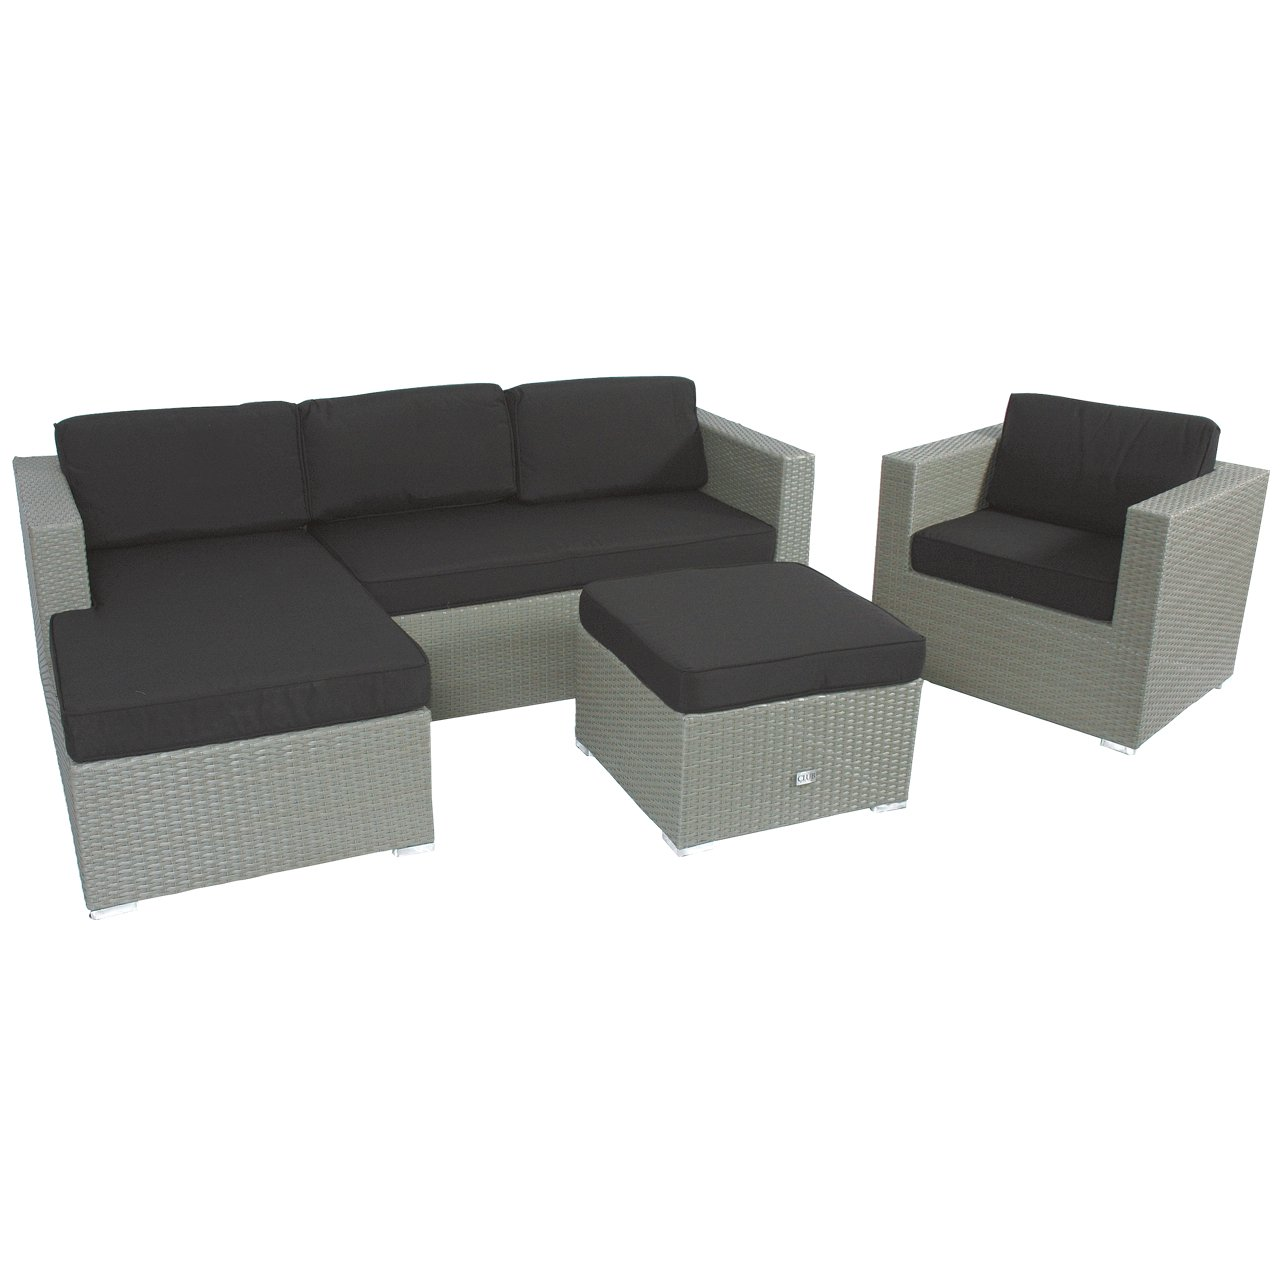 poly rattan ecklounge set 3tlg grau gartenm bel hocker. Black Bedroom Furniture Sets. Home Design Ideas